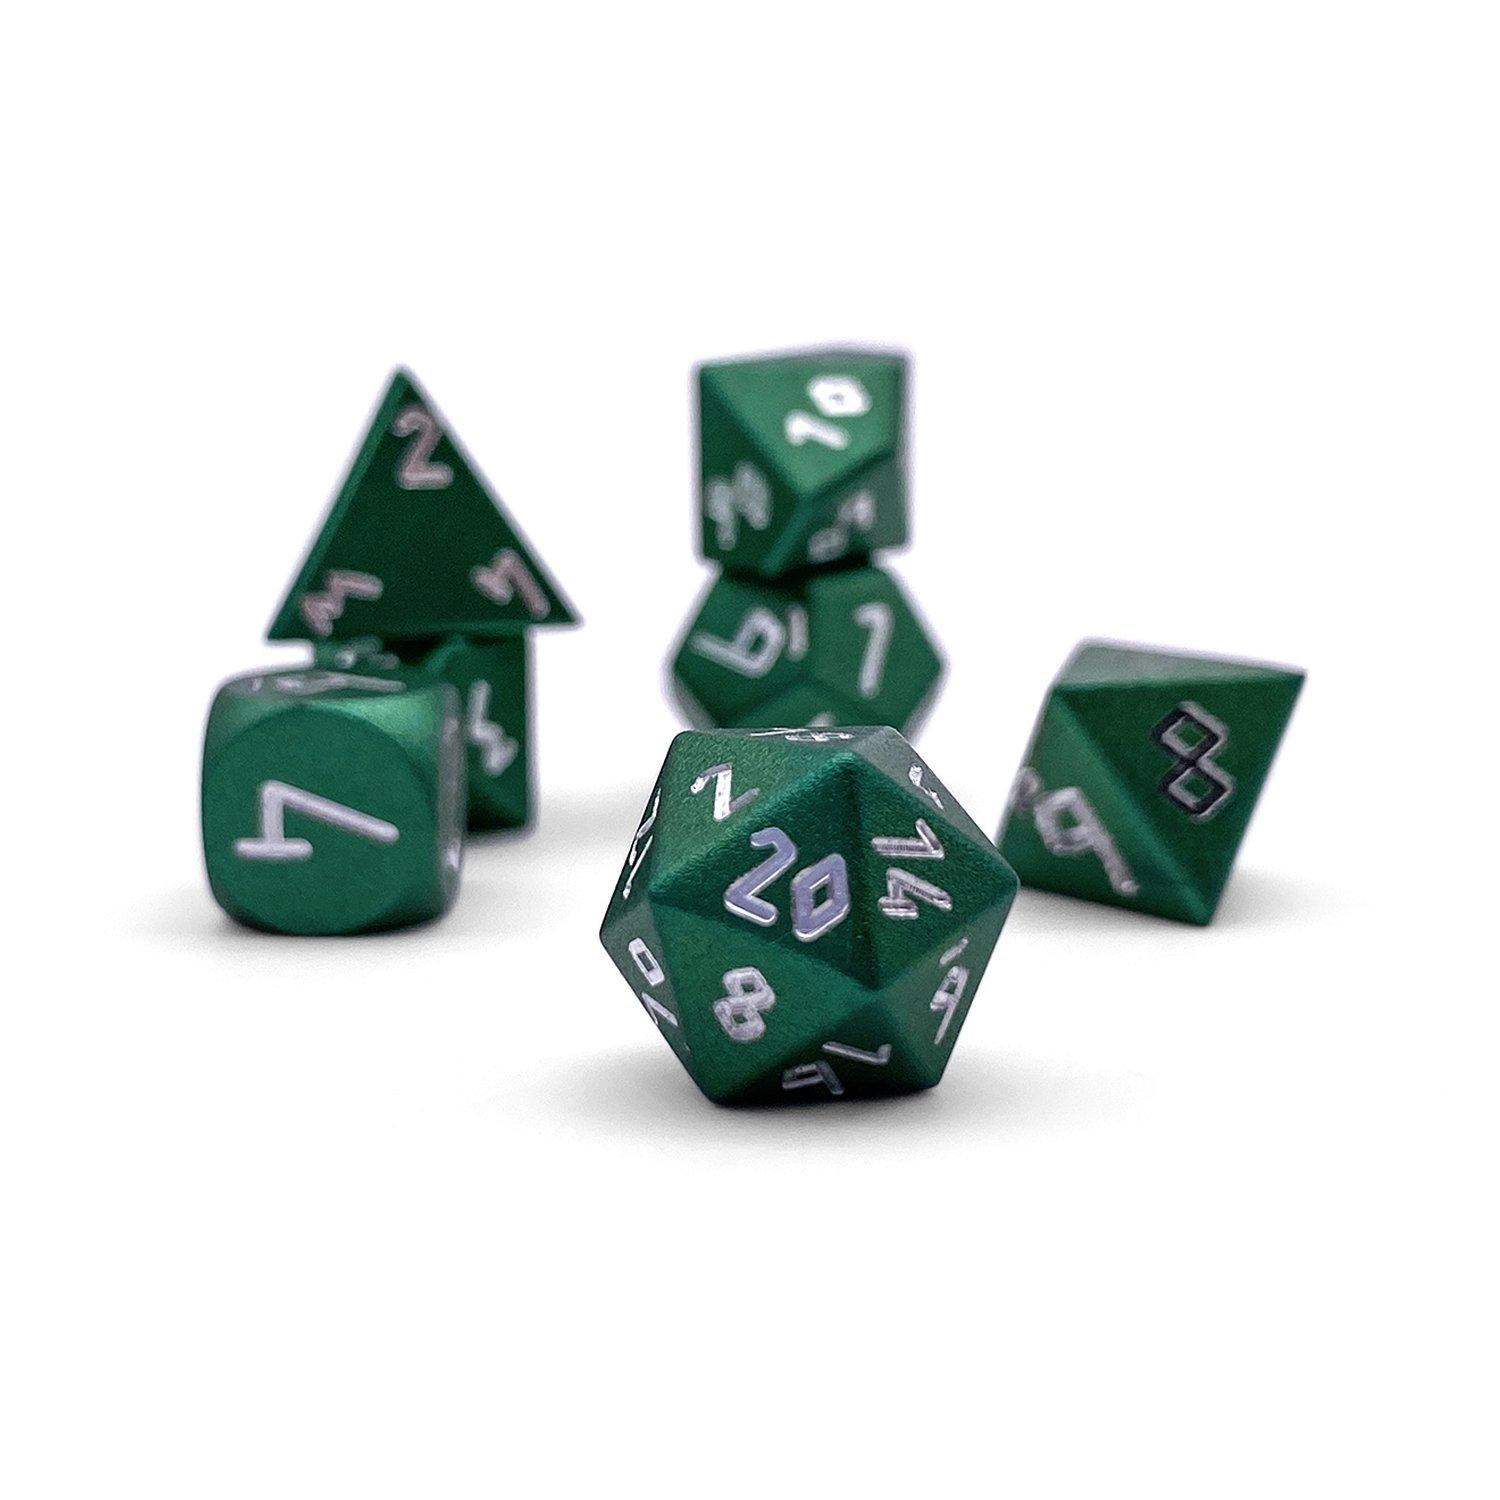 Druid Green Pebble ™ Dice - 10mm 6063 Aircraft Grade Aluminum Mini